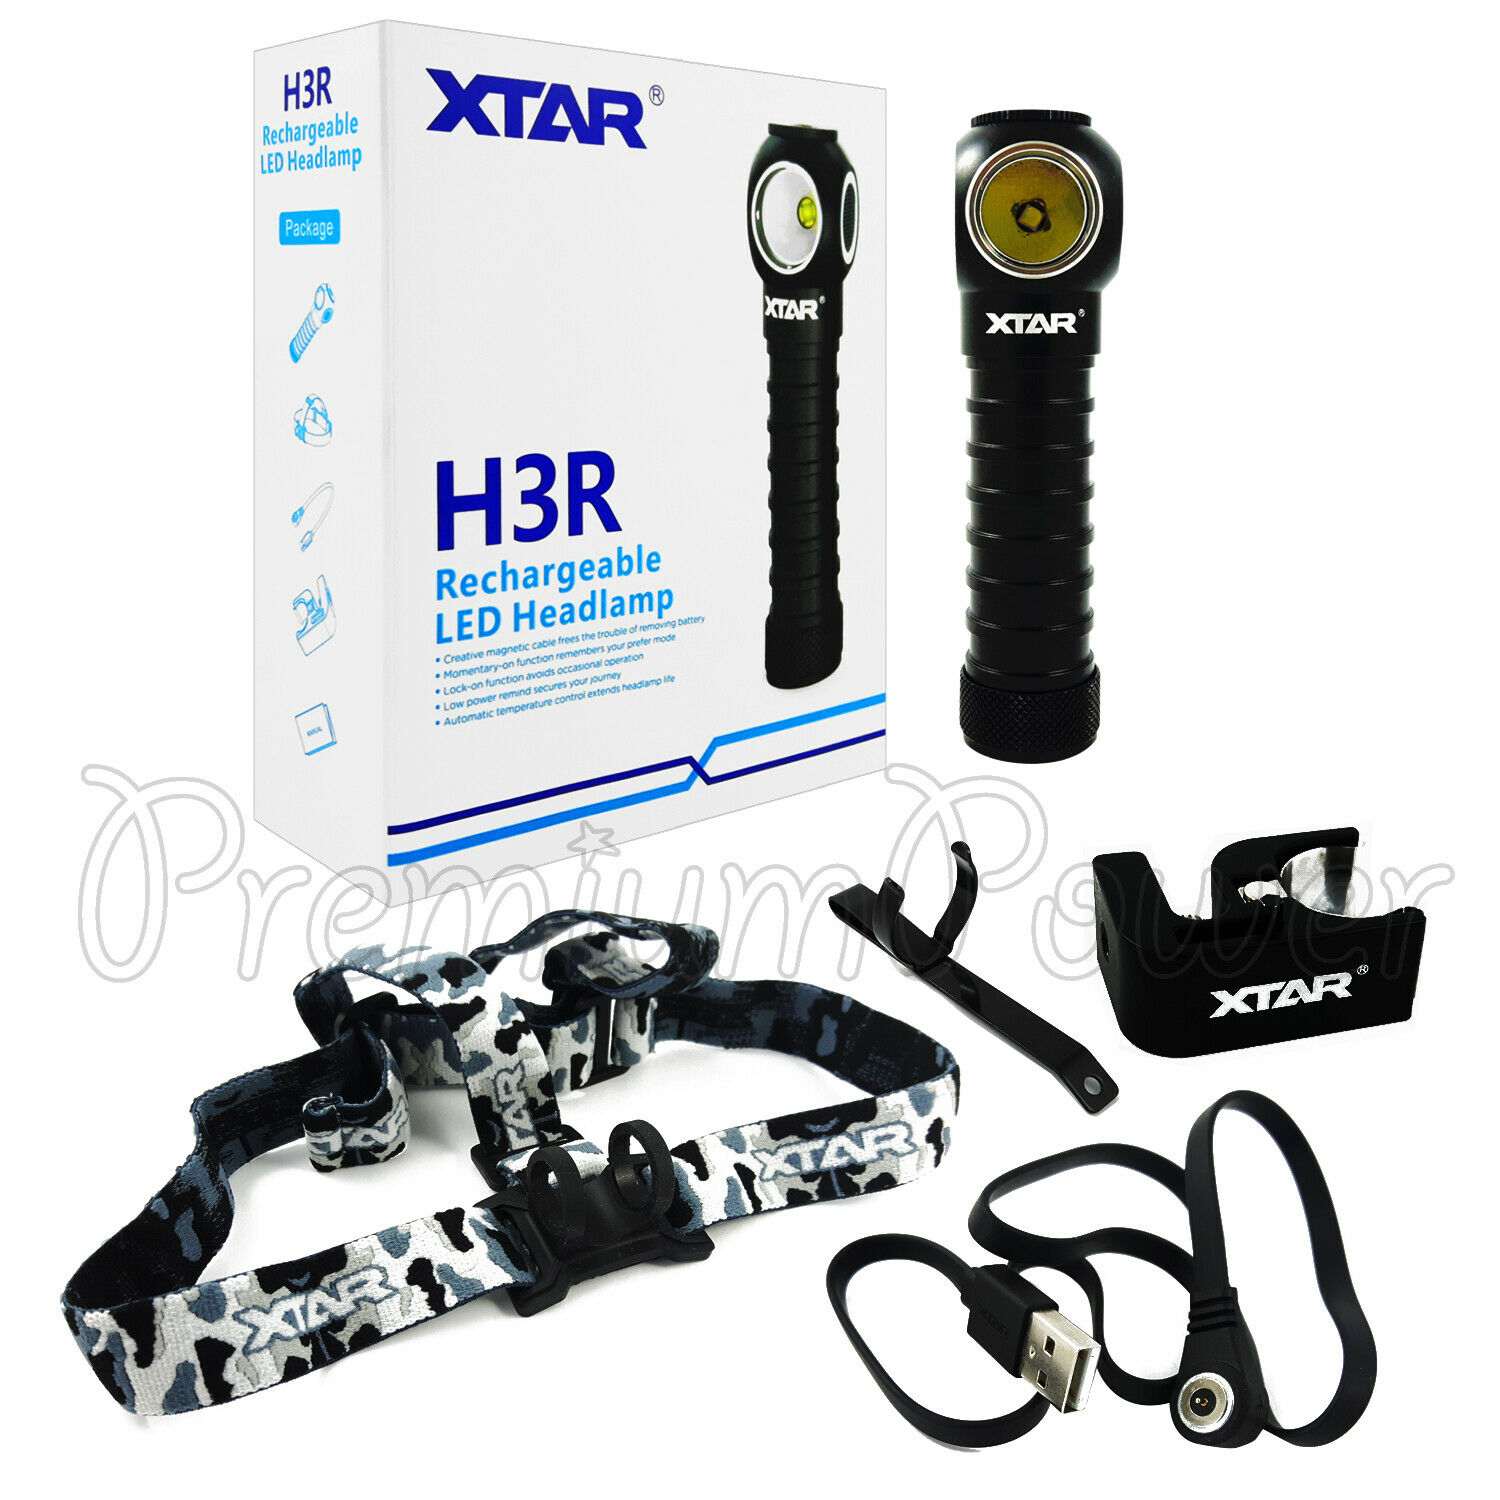 XTAR H3R Rechargeable LED Headlamp max 1000 lm Magnetic Headlight CREEXPL V6